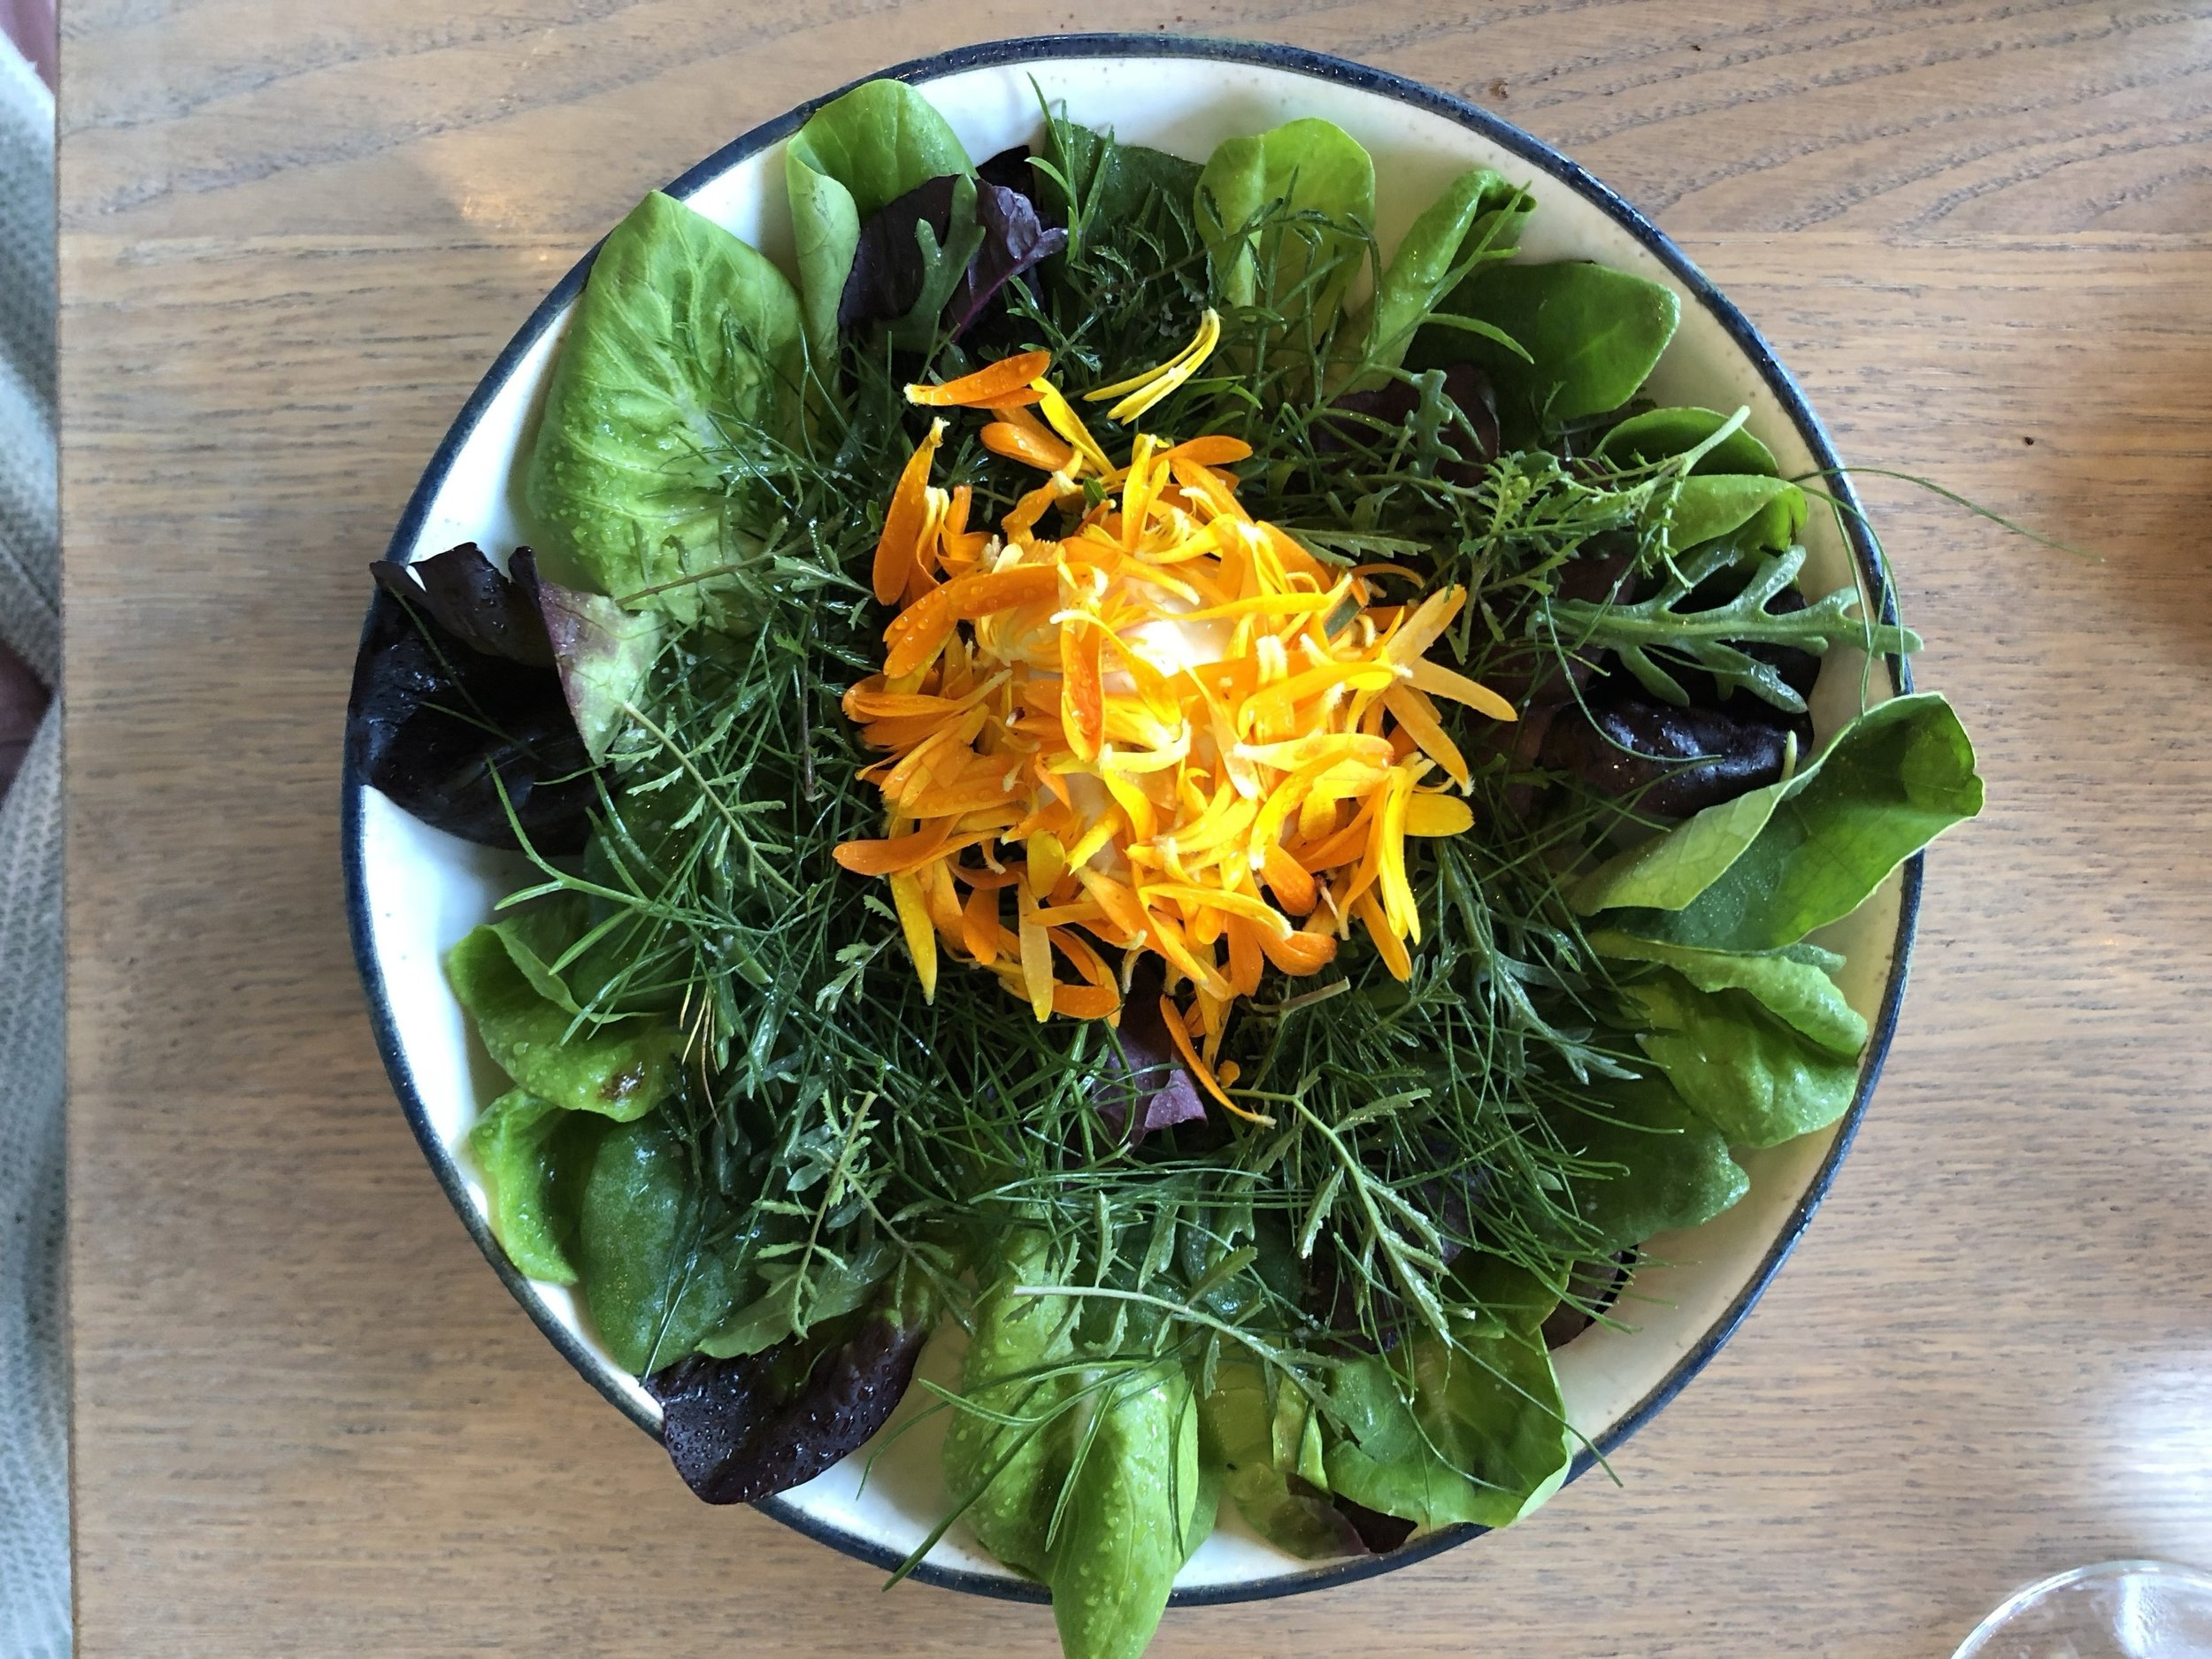 Greens & Herbs from Krogerup - with roasted seaweedThe summeriest of summer salads. All of the ingredients were picks from 108's farm that day. The middle contained an almond oil sorbet, which was mind-bowing. A huge upgrade from the crap flower bucket we had the previous year.